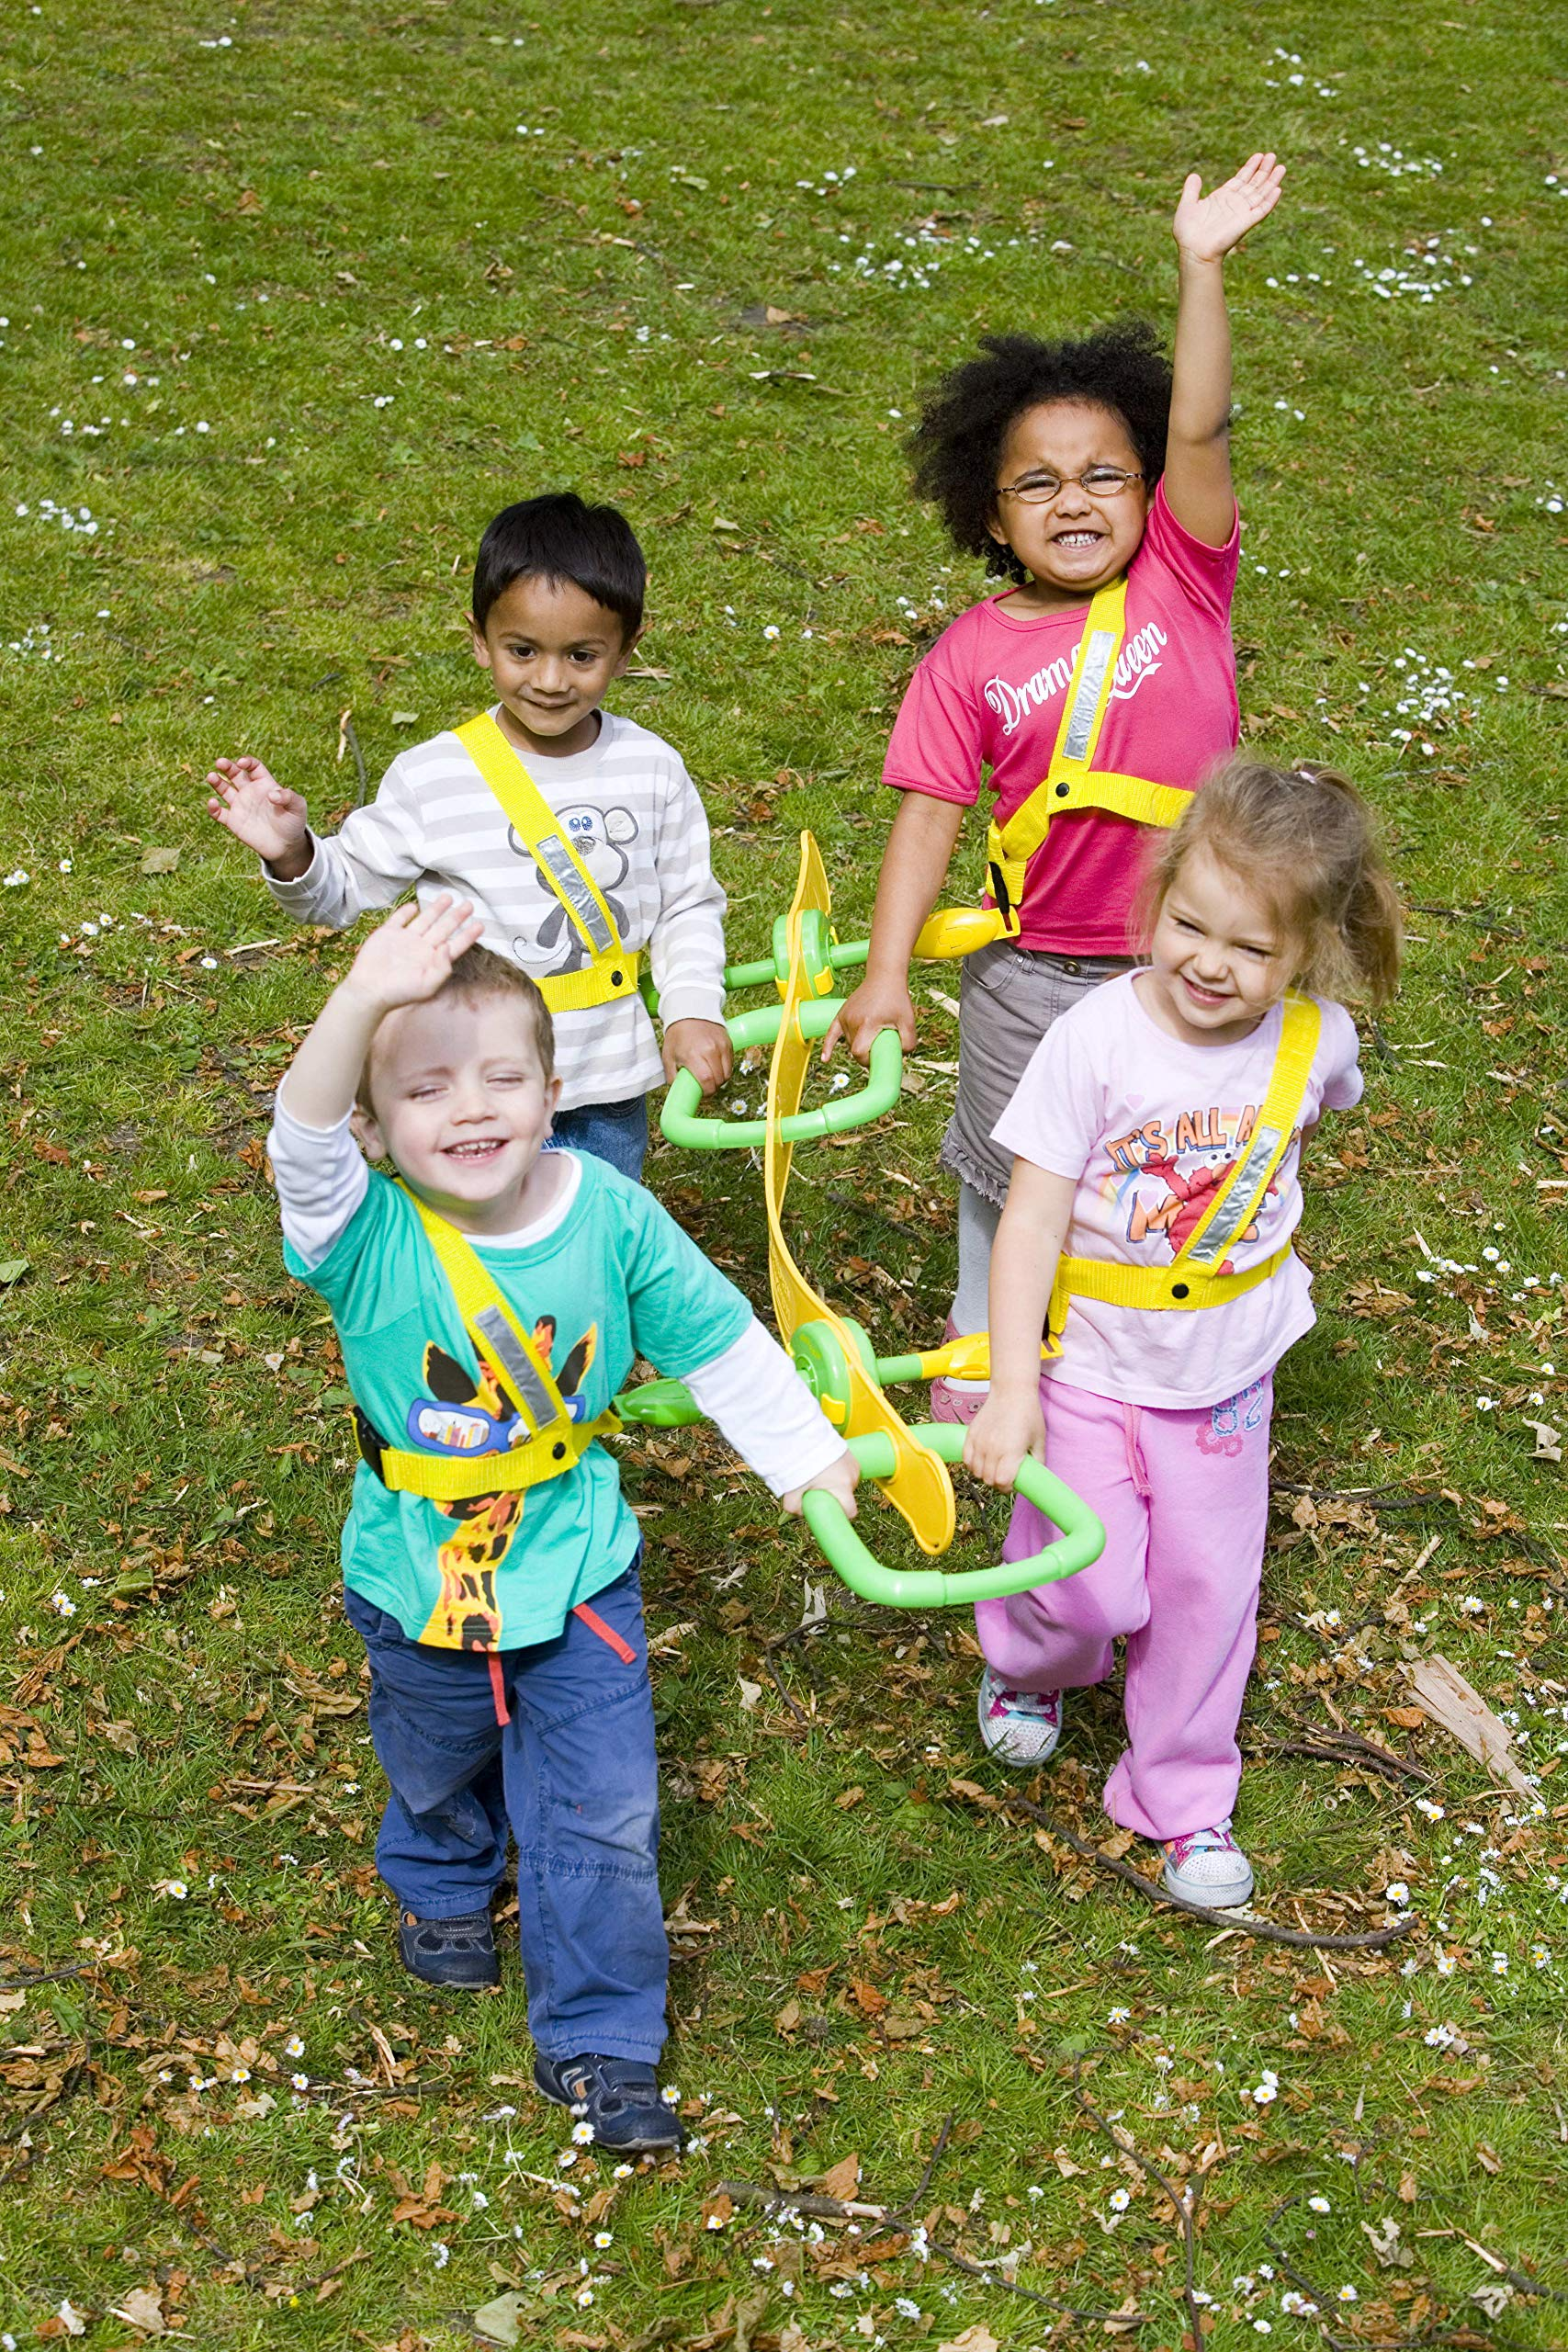 Walkodile Quattro (4 Child) - Kids Walking Rope, Childrens Reins, Toddler Safety Harness. Includes Free Learning Games for Walks Guide by Walkodile (Image #1)